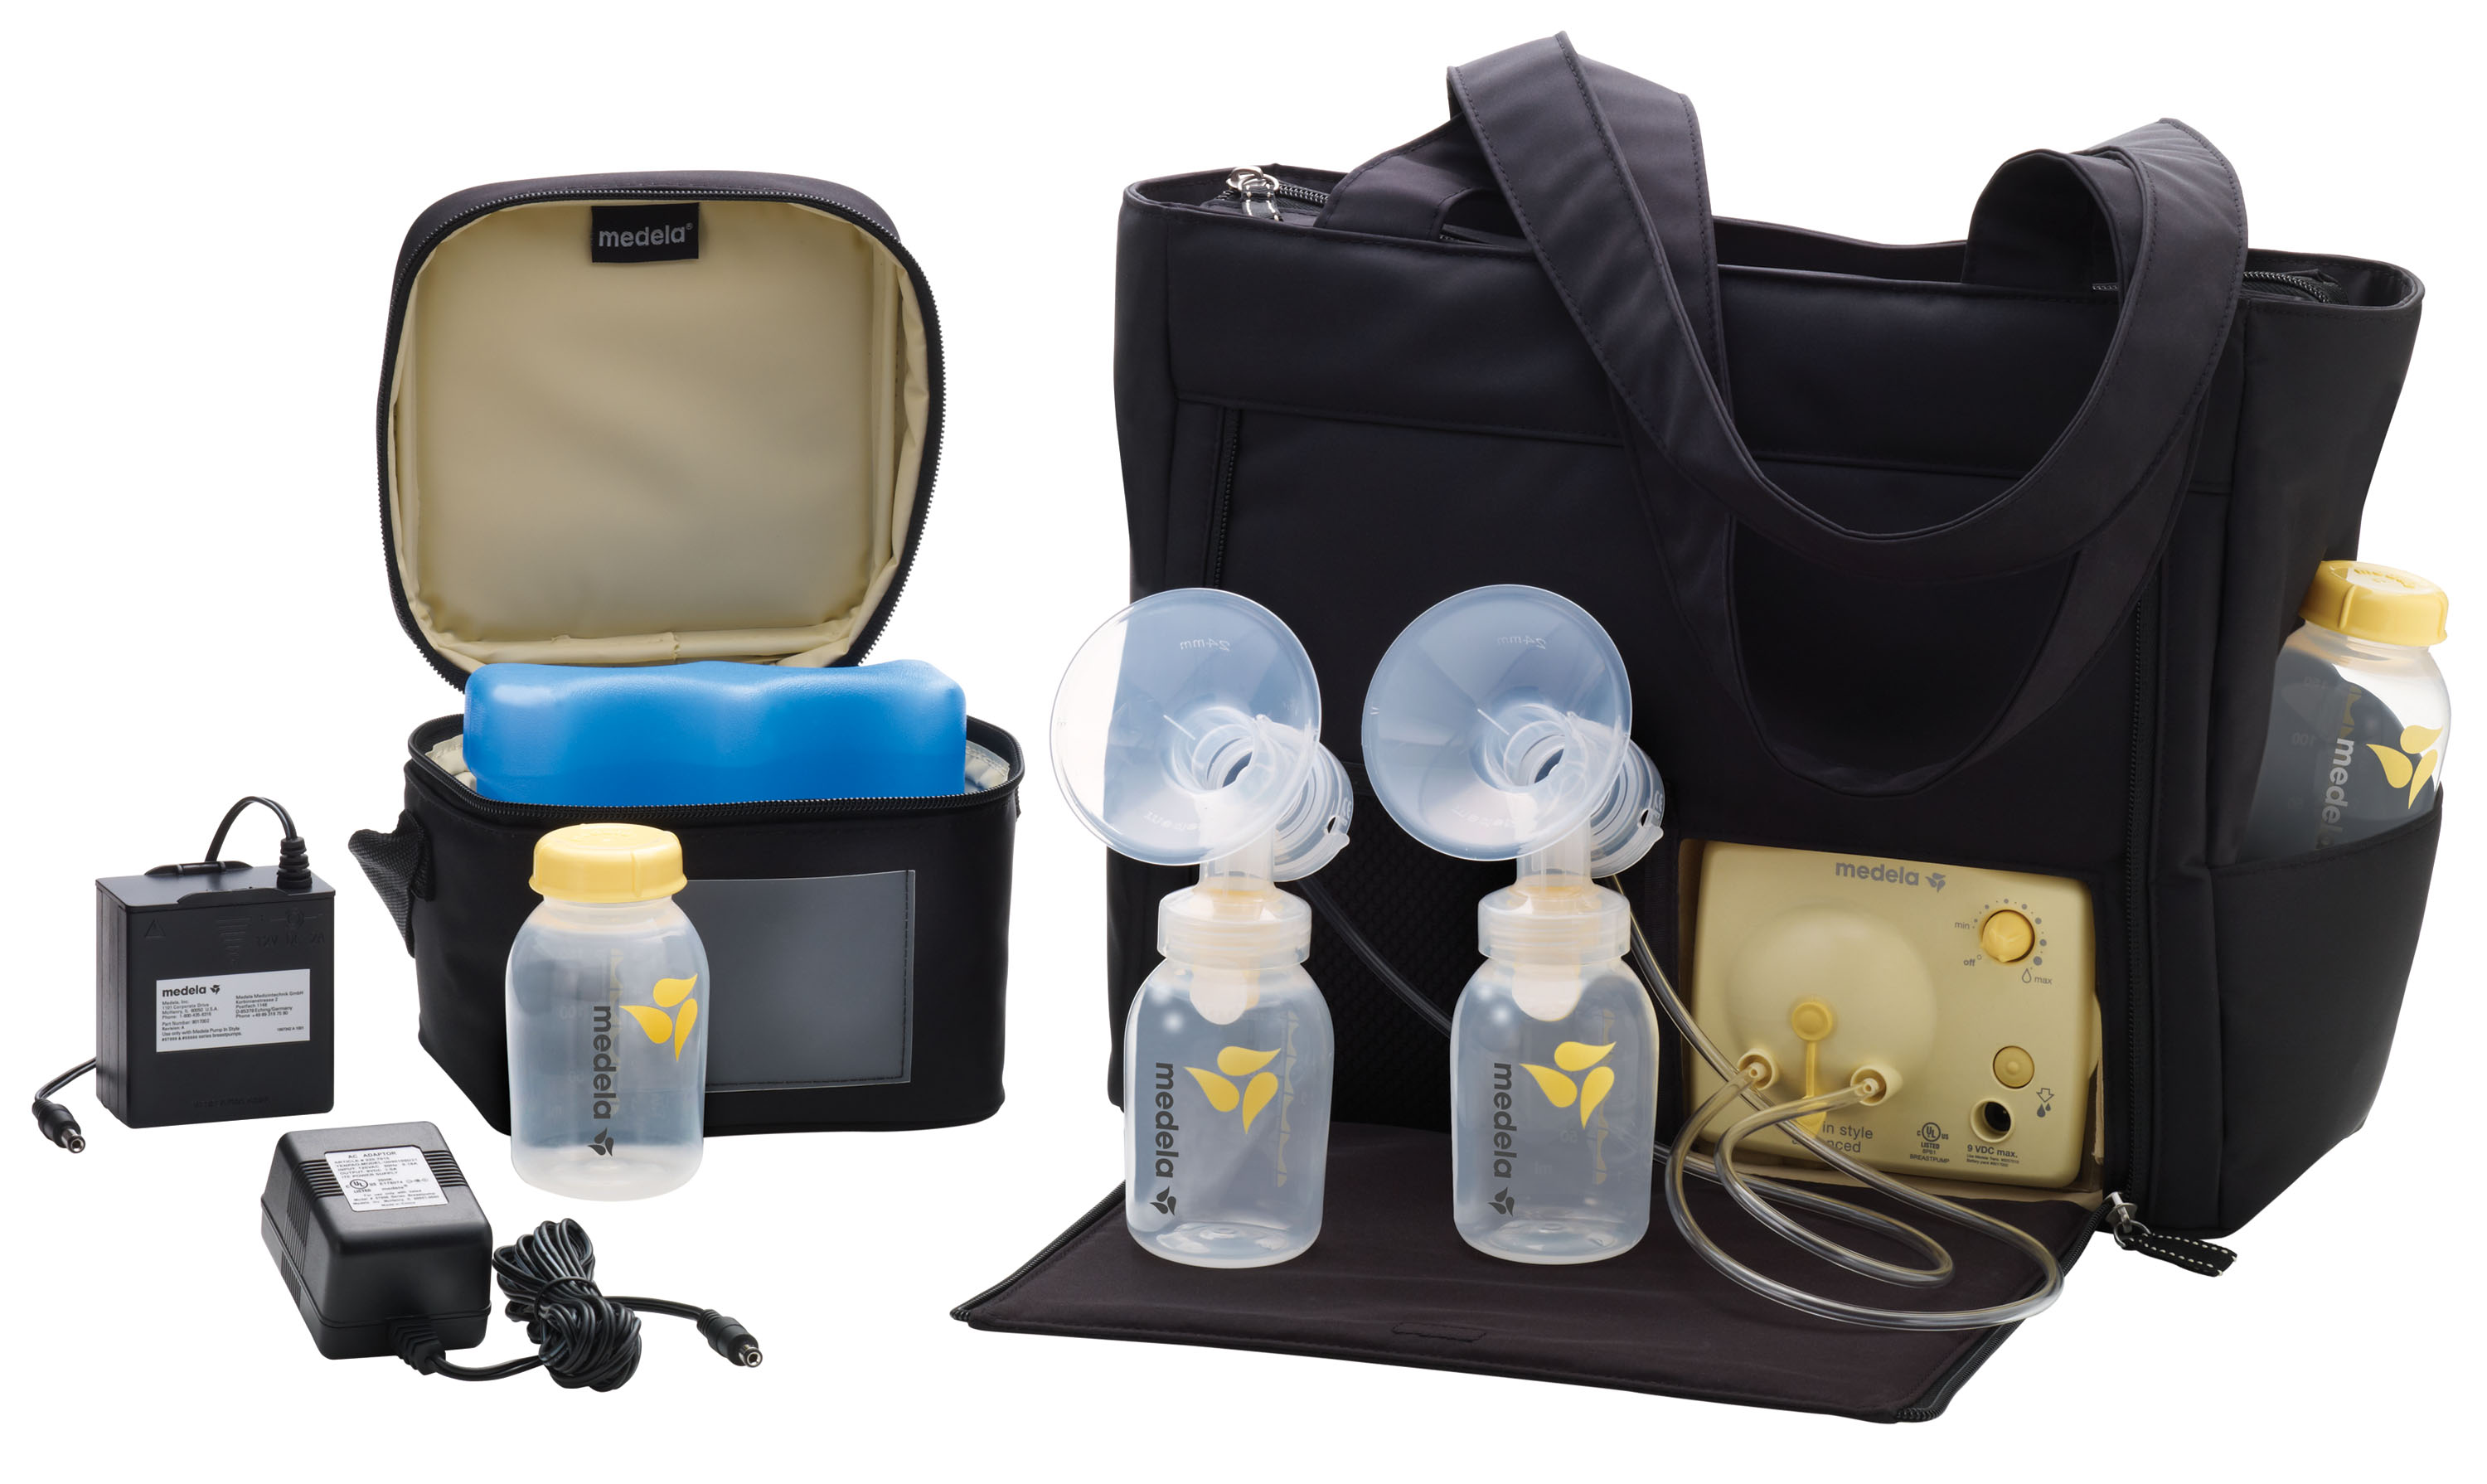 Medela Pump In Style Advanced Double Electric Breast Pump with On-The-Go Tote